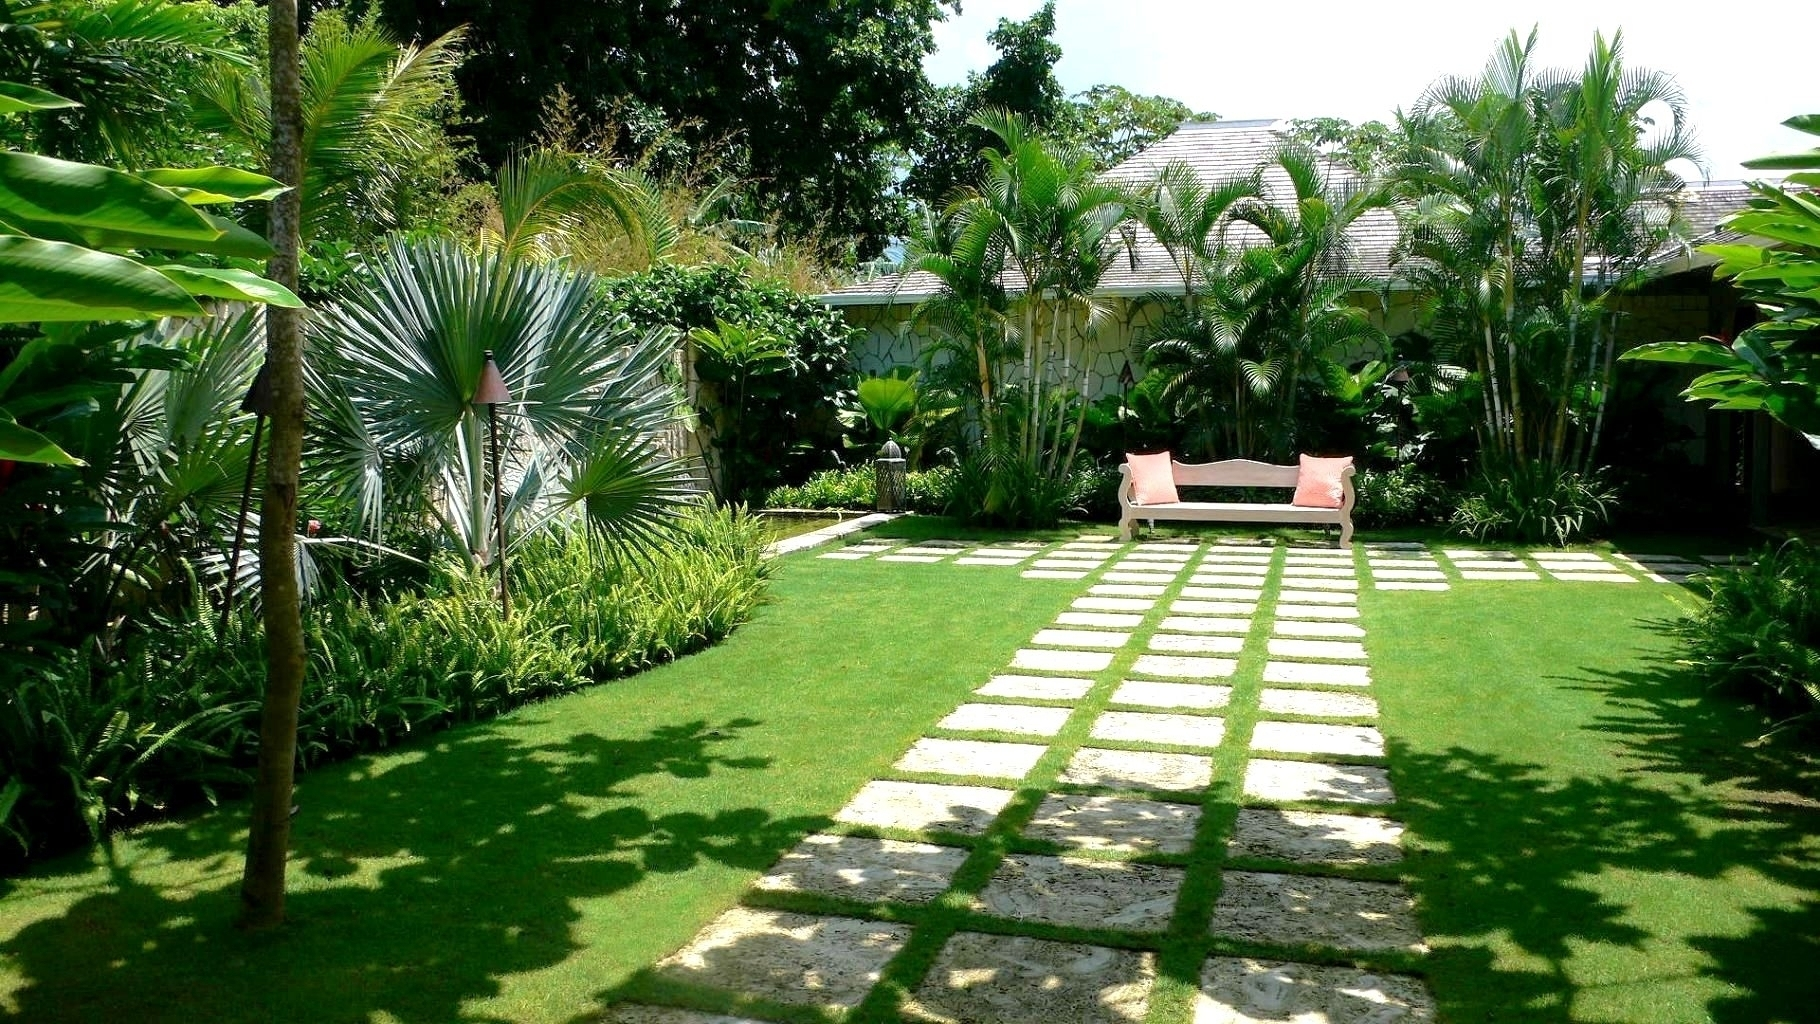 Amazing-Backyard-And-Garden-Design-Ideas-Magazine -Intended-For-Home-Designing-Inspiration within Backyard Garden Ideas Magazine